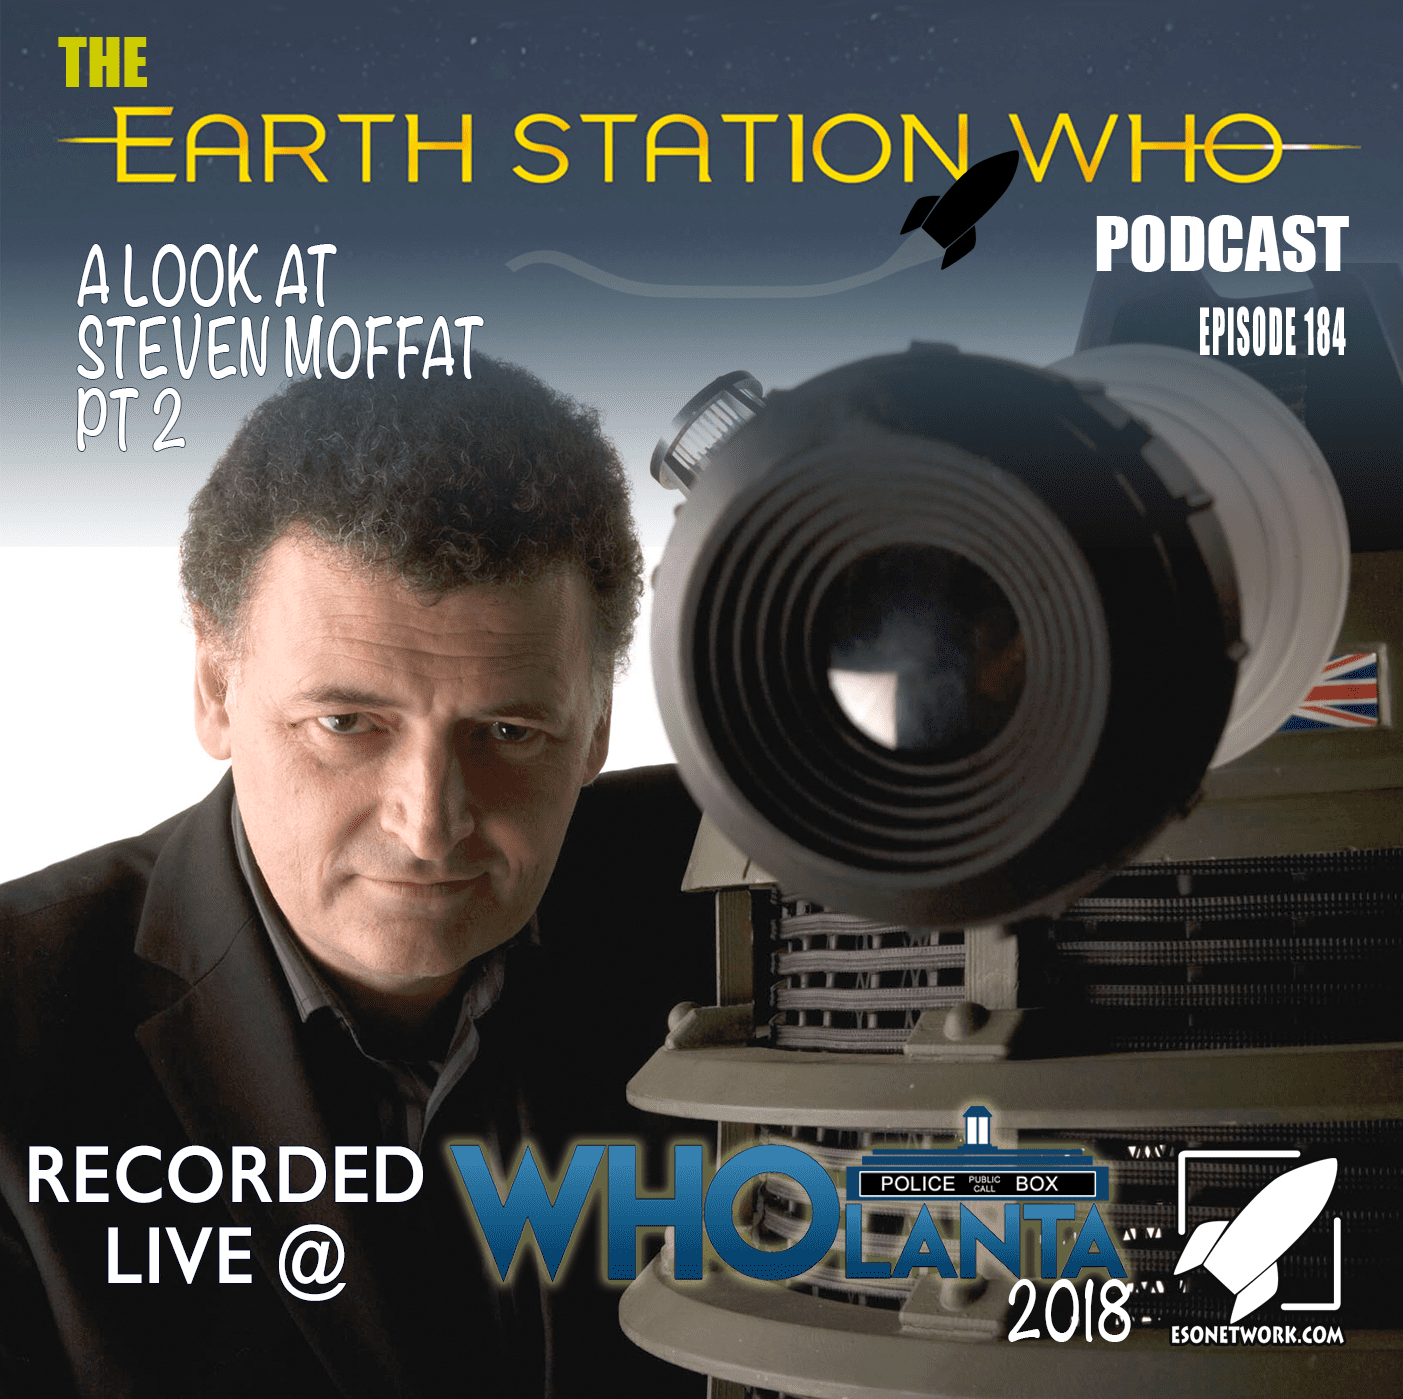 The Earth Station Who Podcast Ep 184